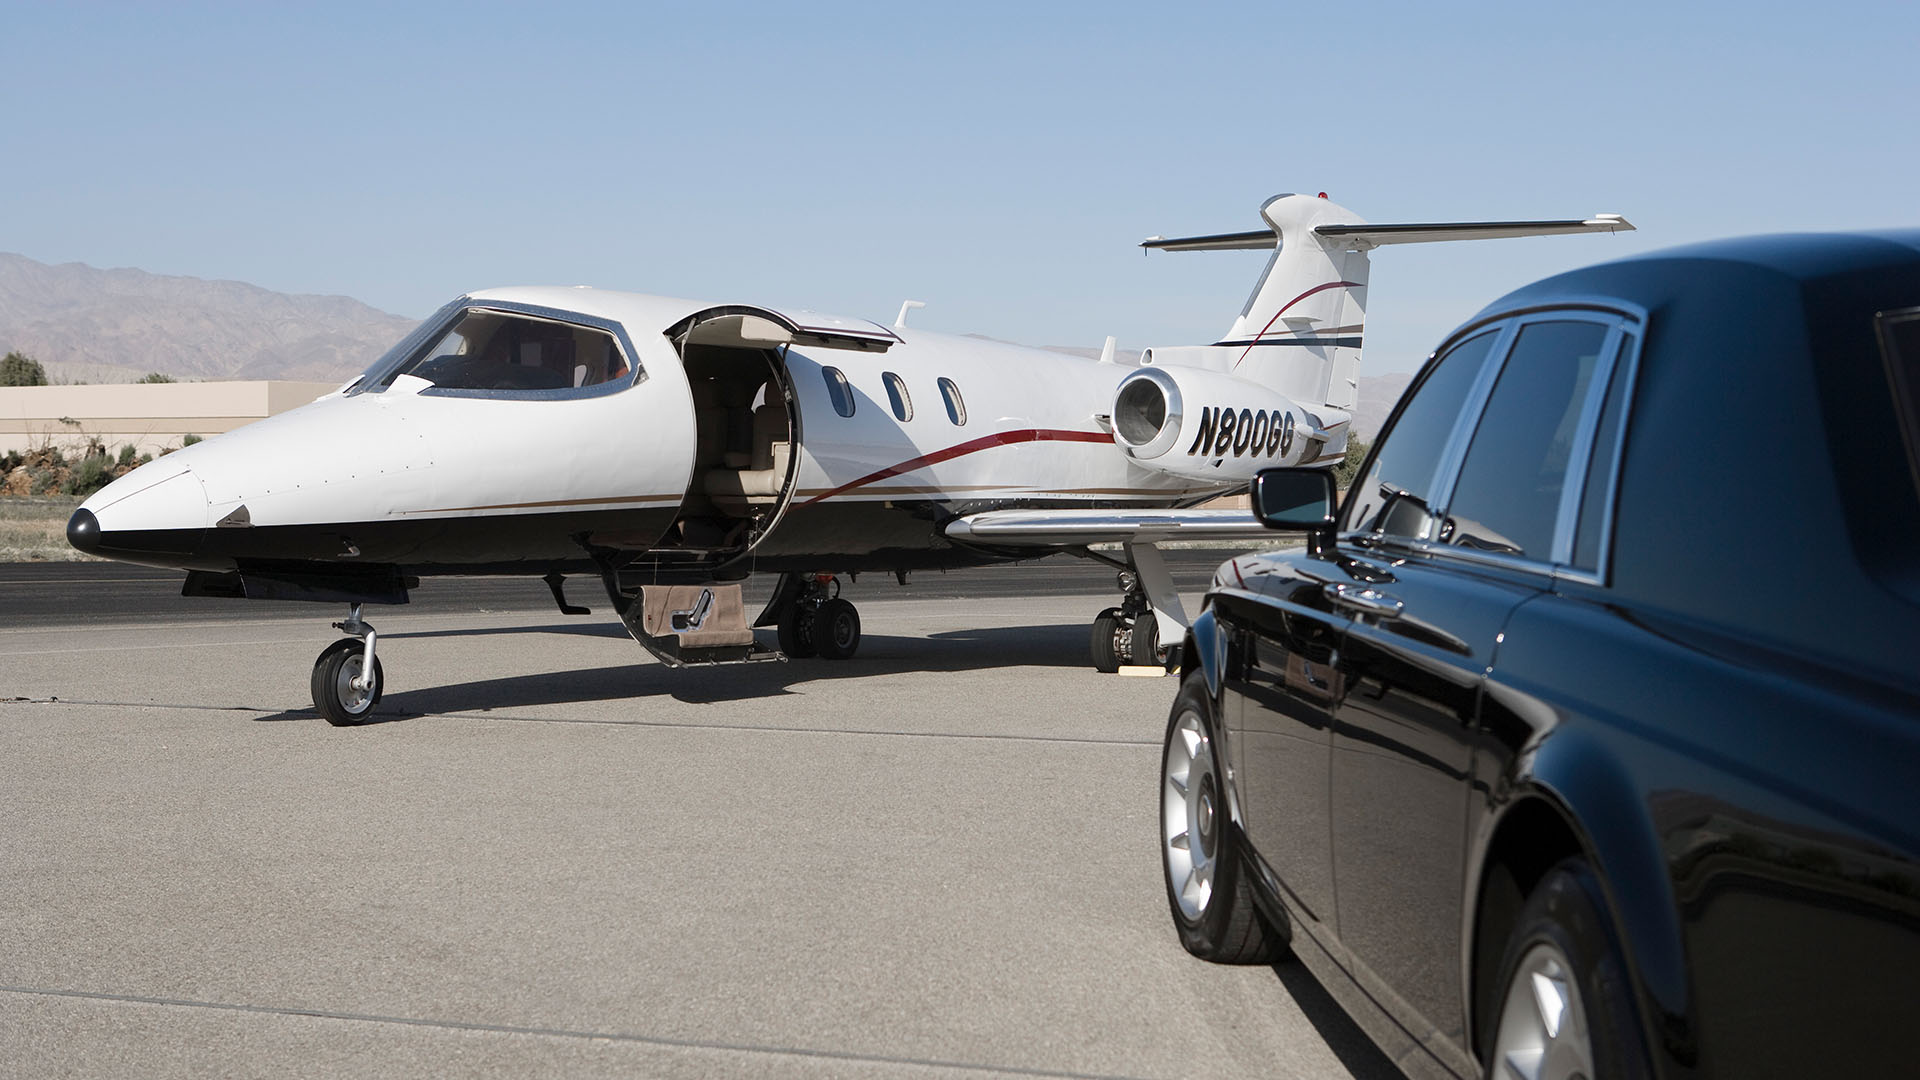 Elite Cars USA LLC Limo Service, Limo Rental and Airport Limo Service